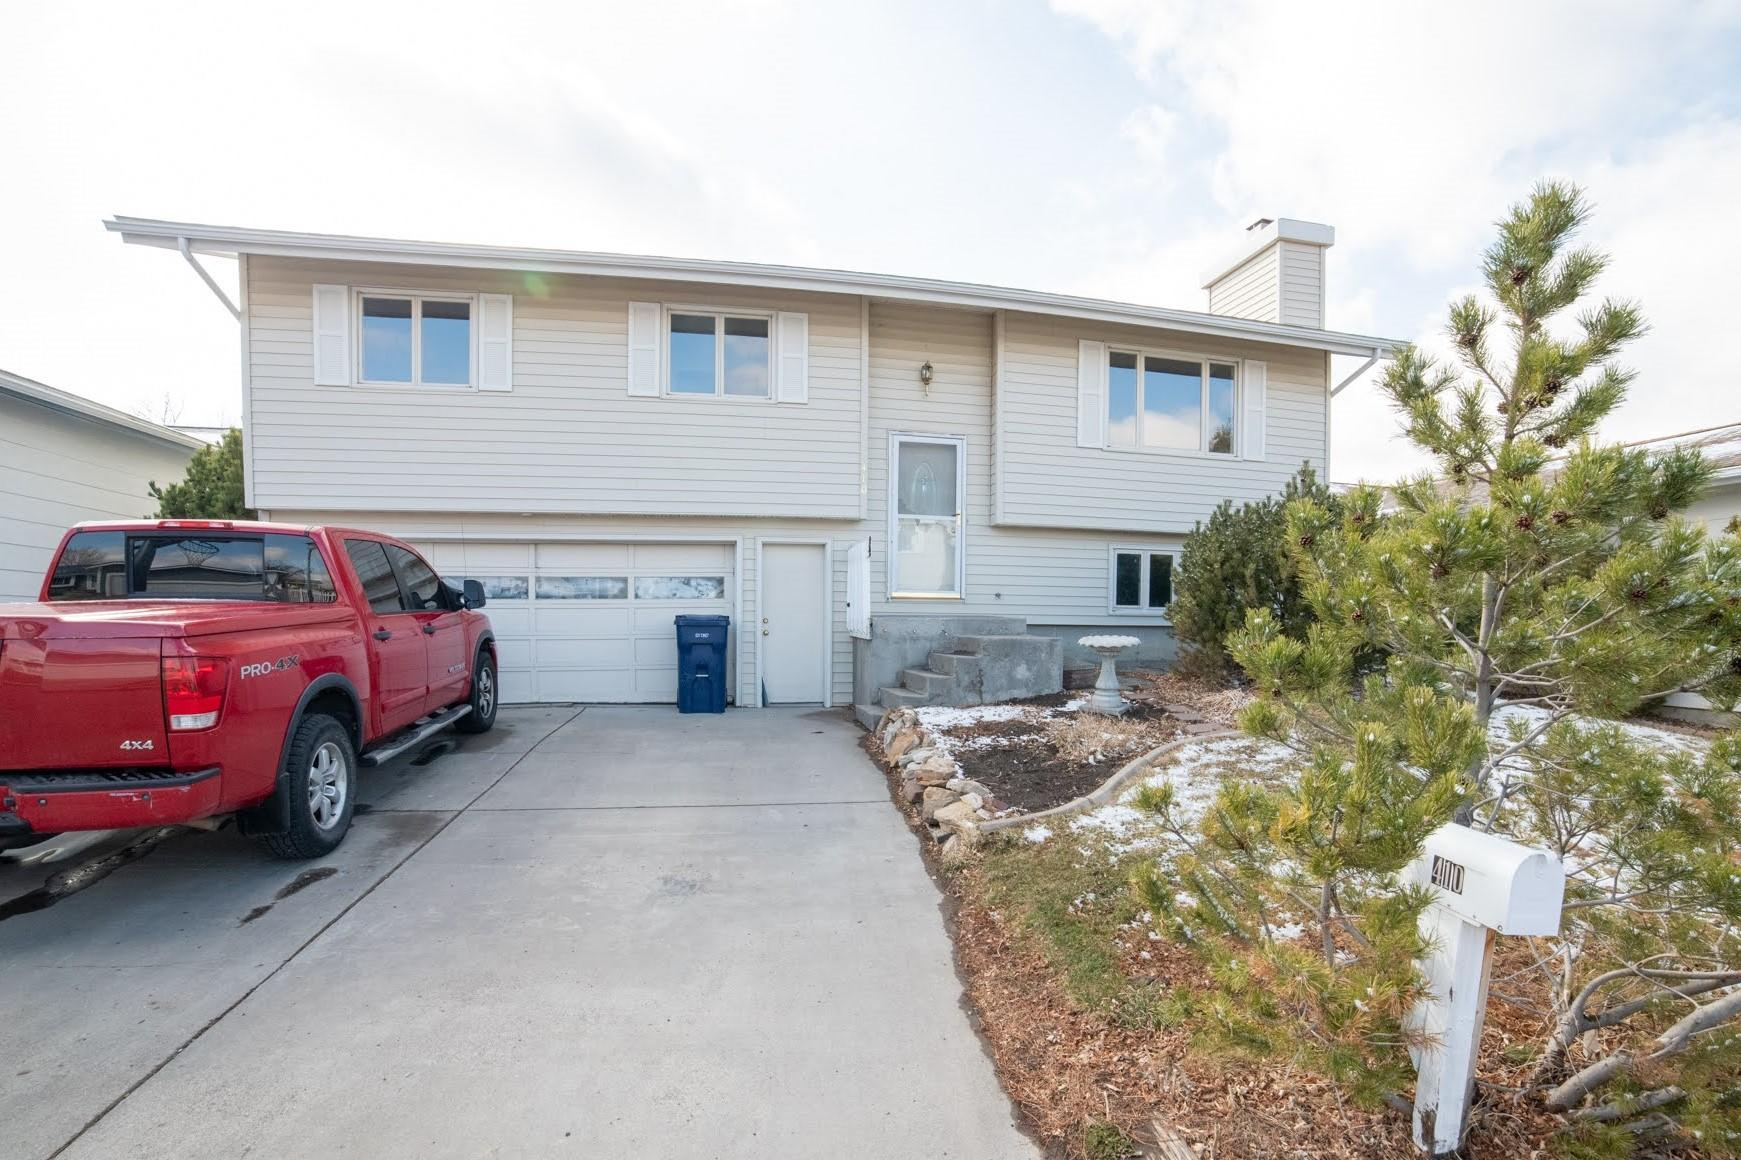 3 BEDROOMS, 2 BATHS, DOUBLE CAR GARAGE WITH CENTRAL AIR CLOSE TO MAFB. LARGE MASTER BDRM WITH DOOR TO MAIN BATH. $9,000 FLOORING/ PAINT ALLOWANCE/ APPLIANCE ALLOWANCE INCLUDED IN PRICE FOR BUYERS TO COMPLETE TO THEIR TASTES!